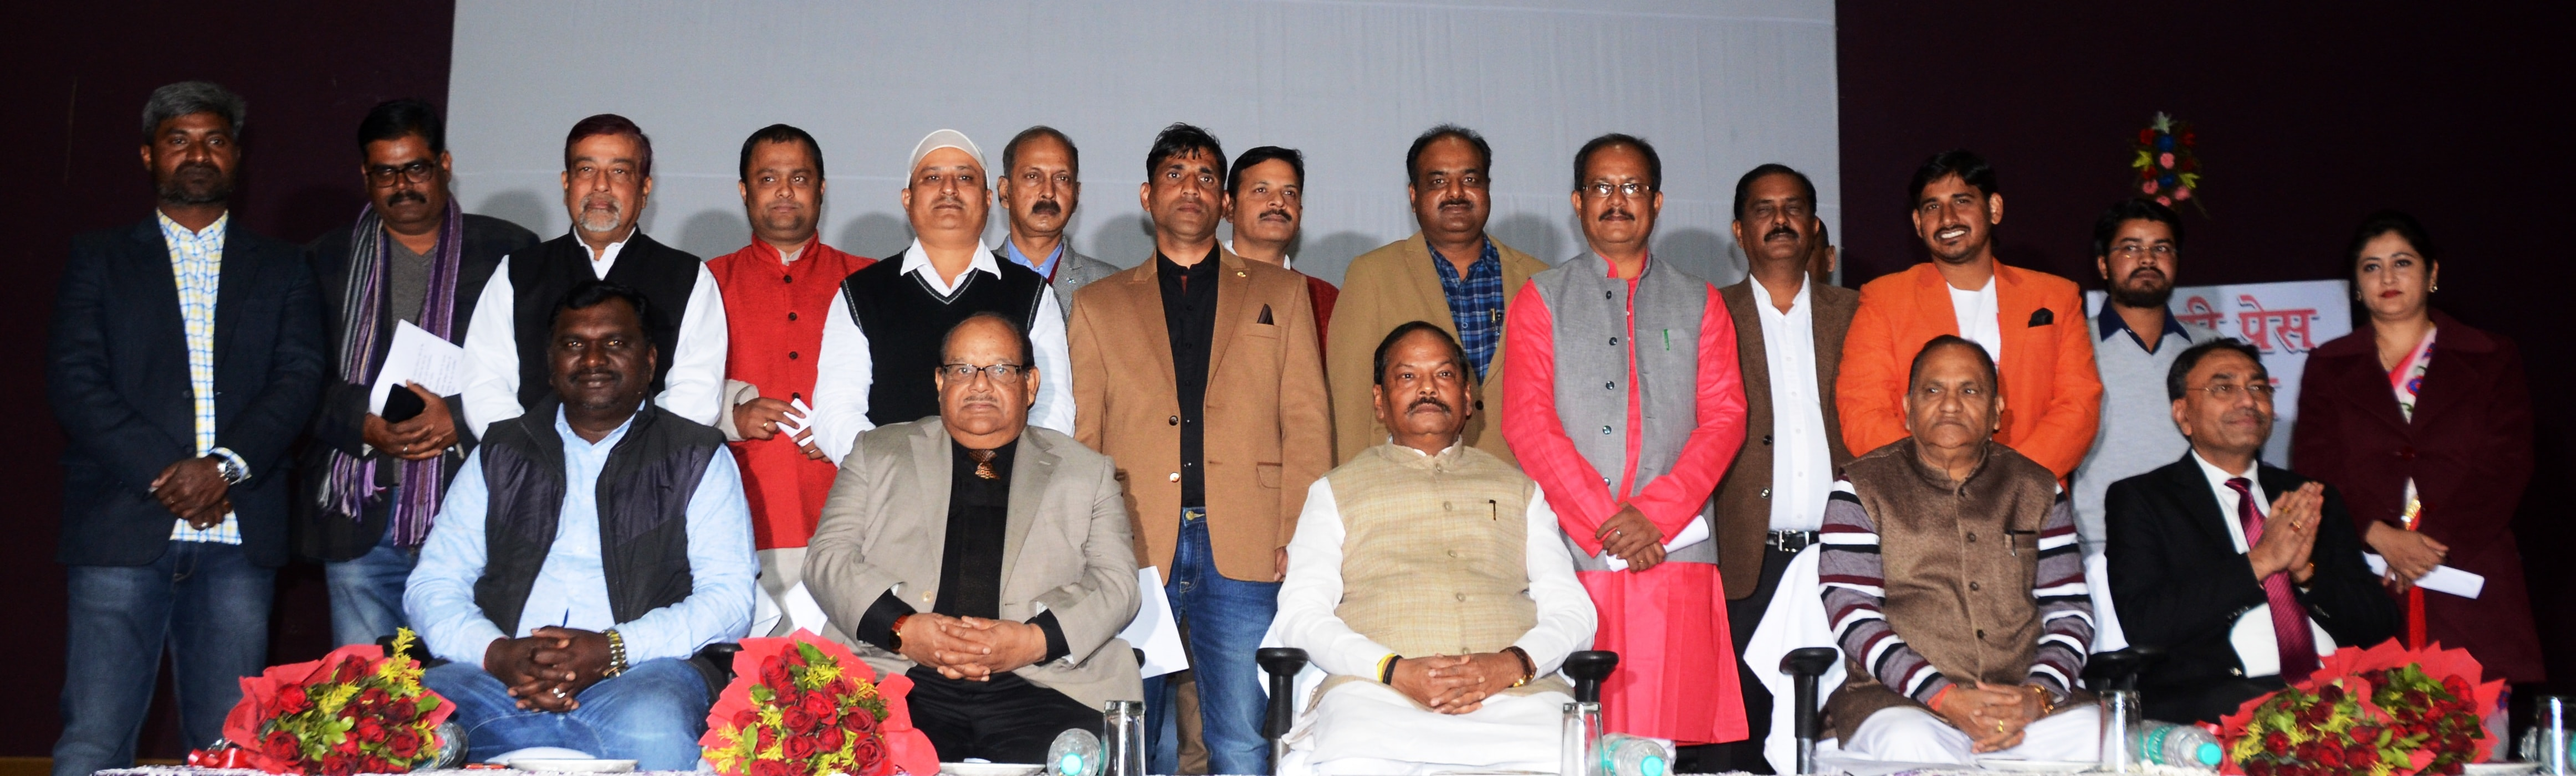 let-ranchi-press-club-be-recognized-as-an-ideal-press-club-throughout-the-country-cm